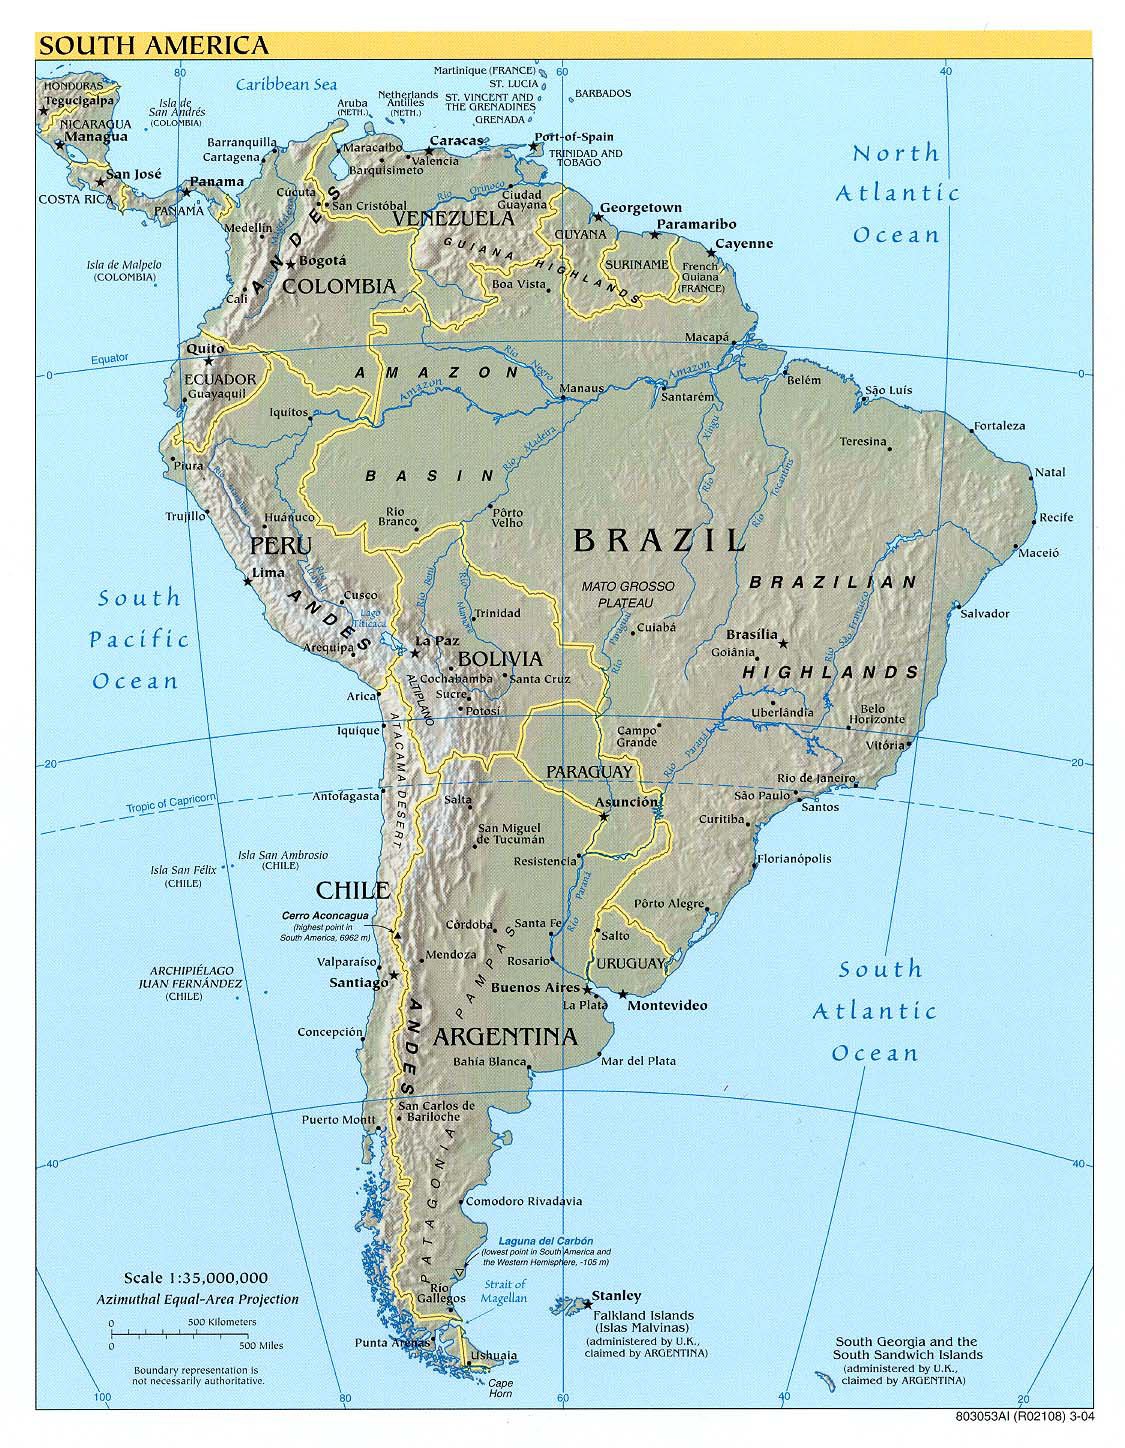 Detailed political and relief map of South America South America detailed po